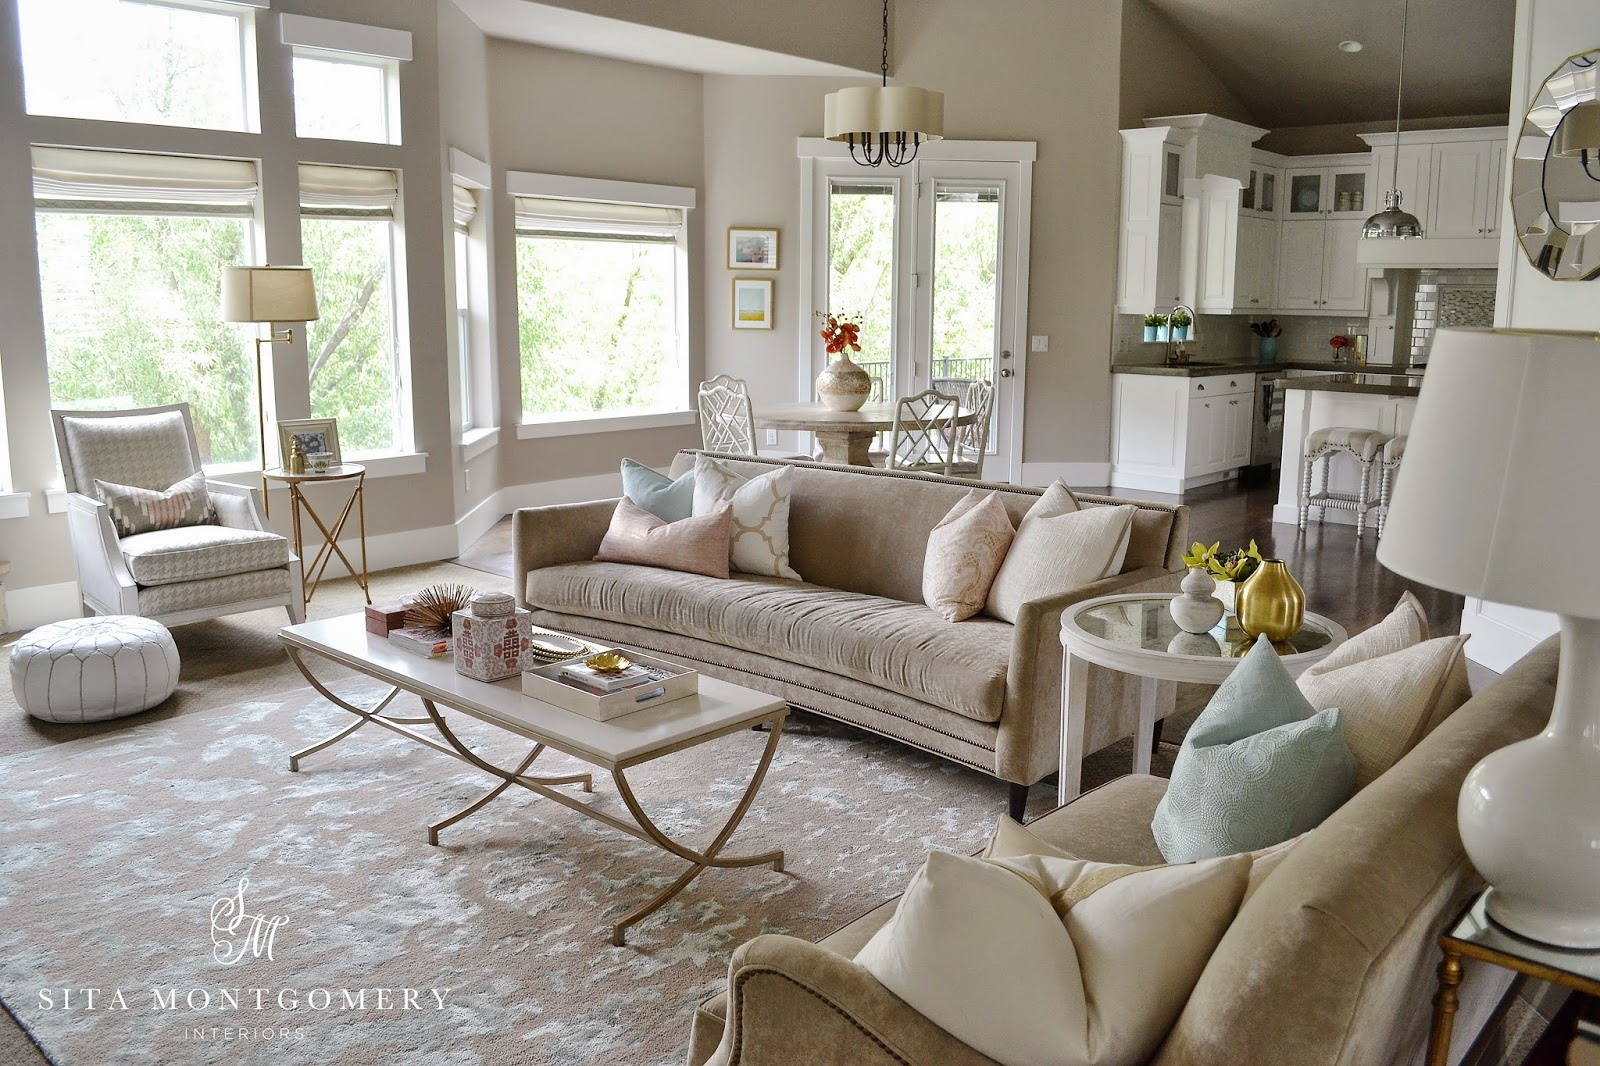 Sita Montgomery Interiors: My Home Family Room Mini Makeover Reveal ...